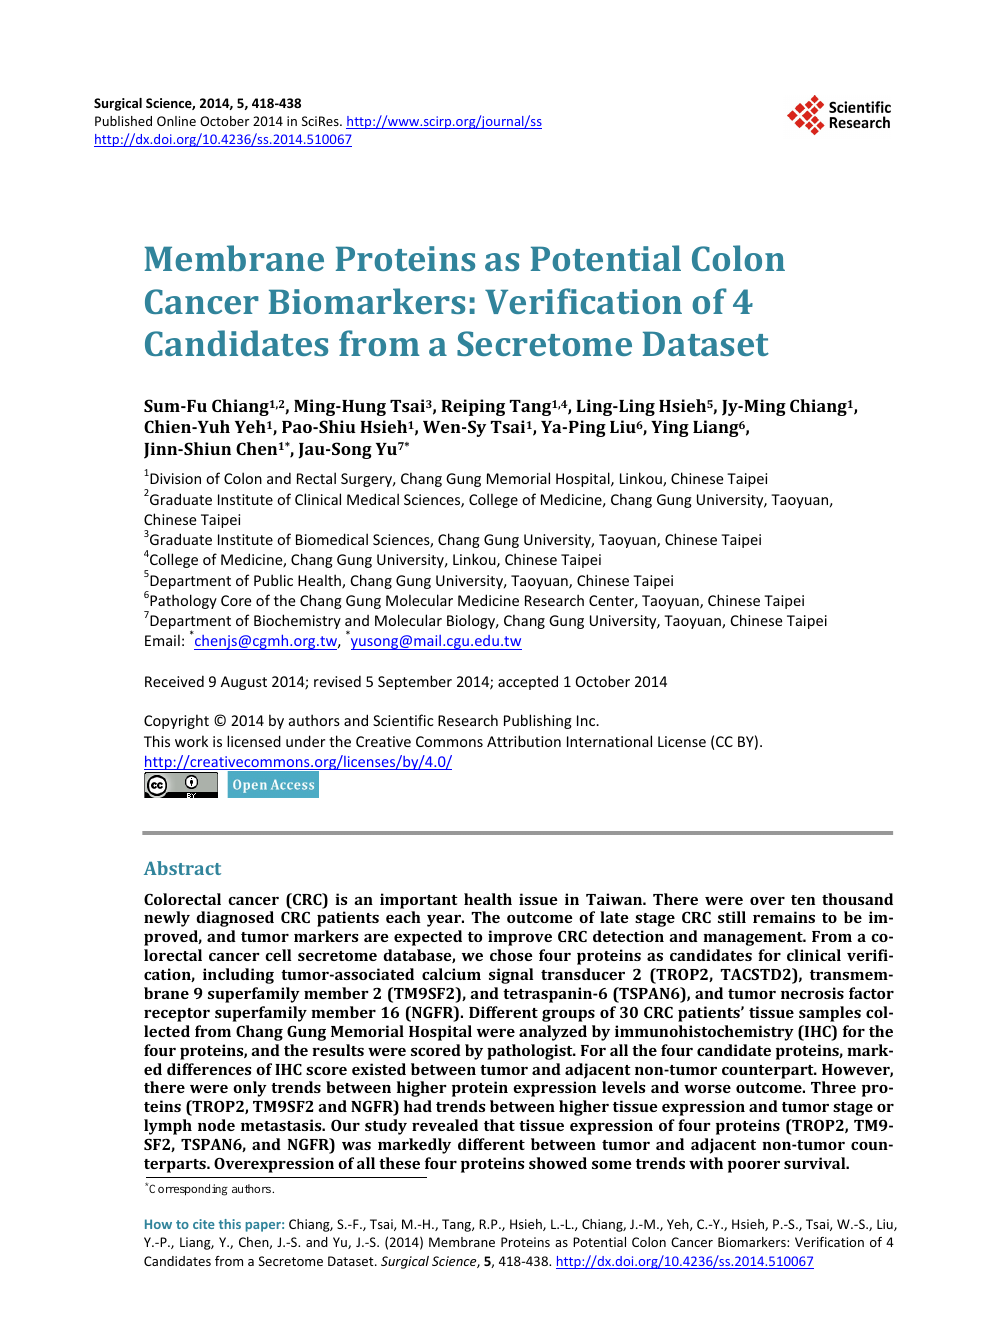 Membrane Proteins As Potential Colon Cancer Biomarkers Verification Of 4 Candidates From A Secretome Dataset Topic Of Research Paper In Clinical Medicine Download Scholarly Article Pdf And Read For Free On